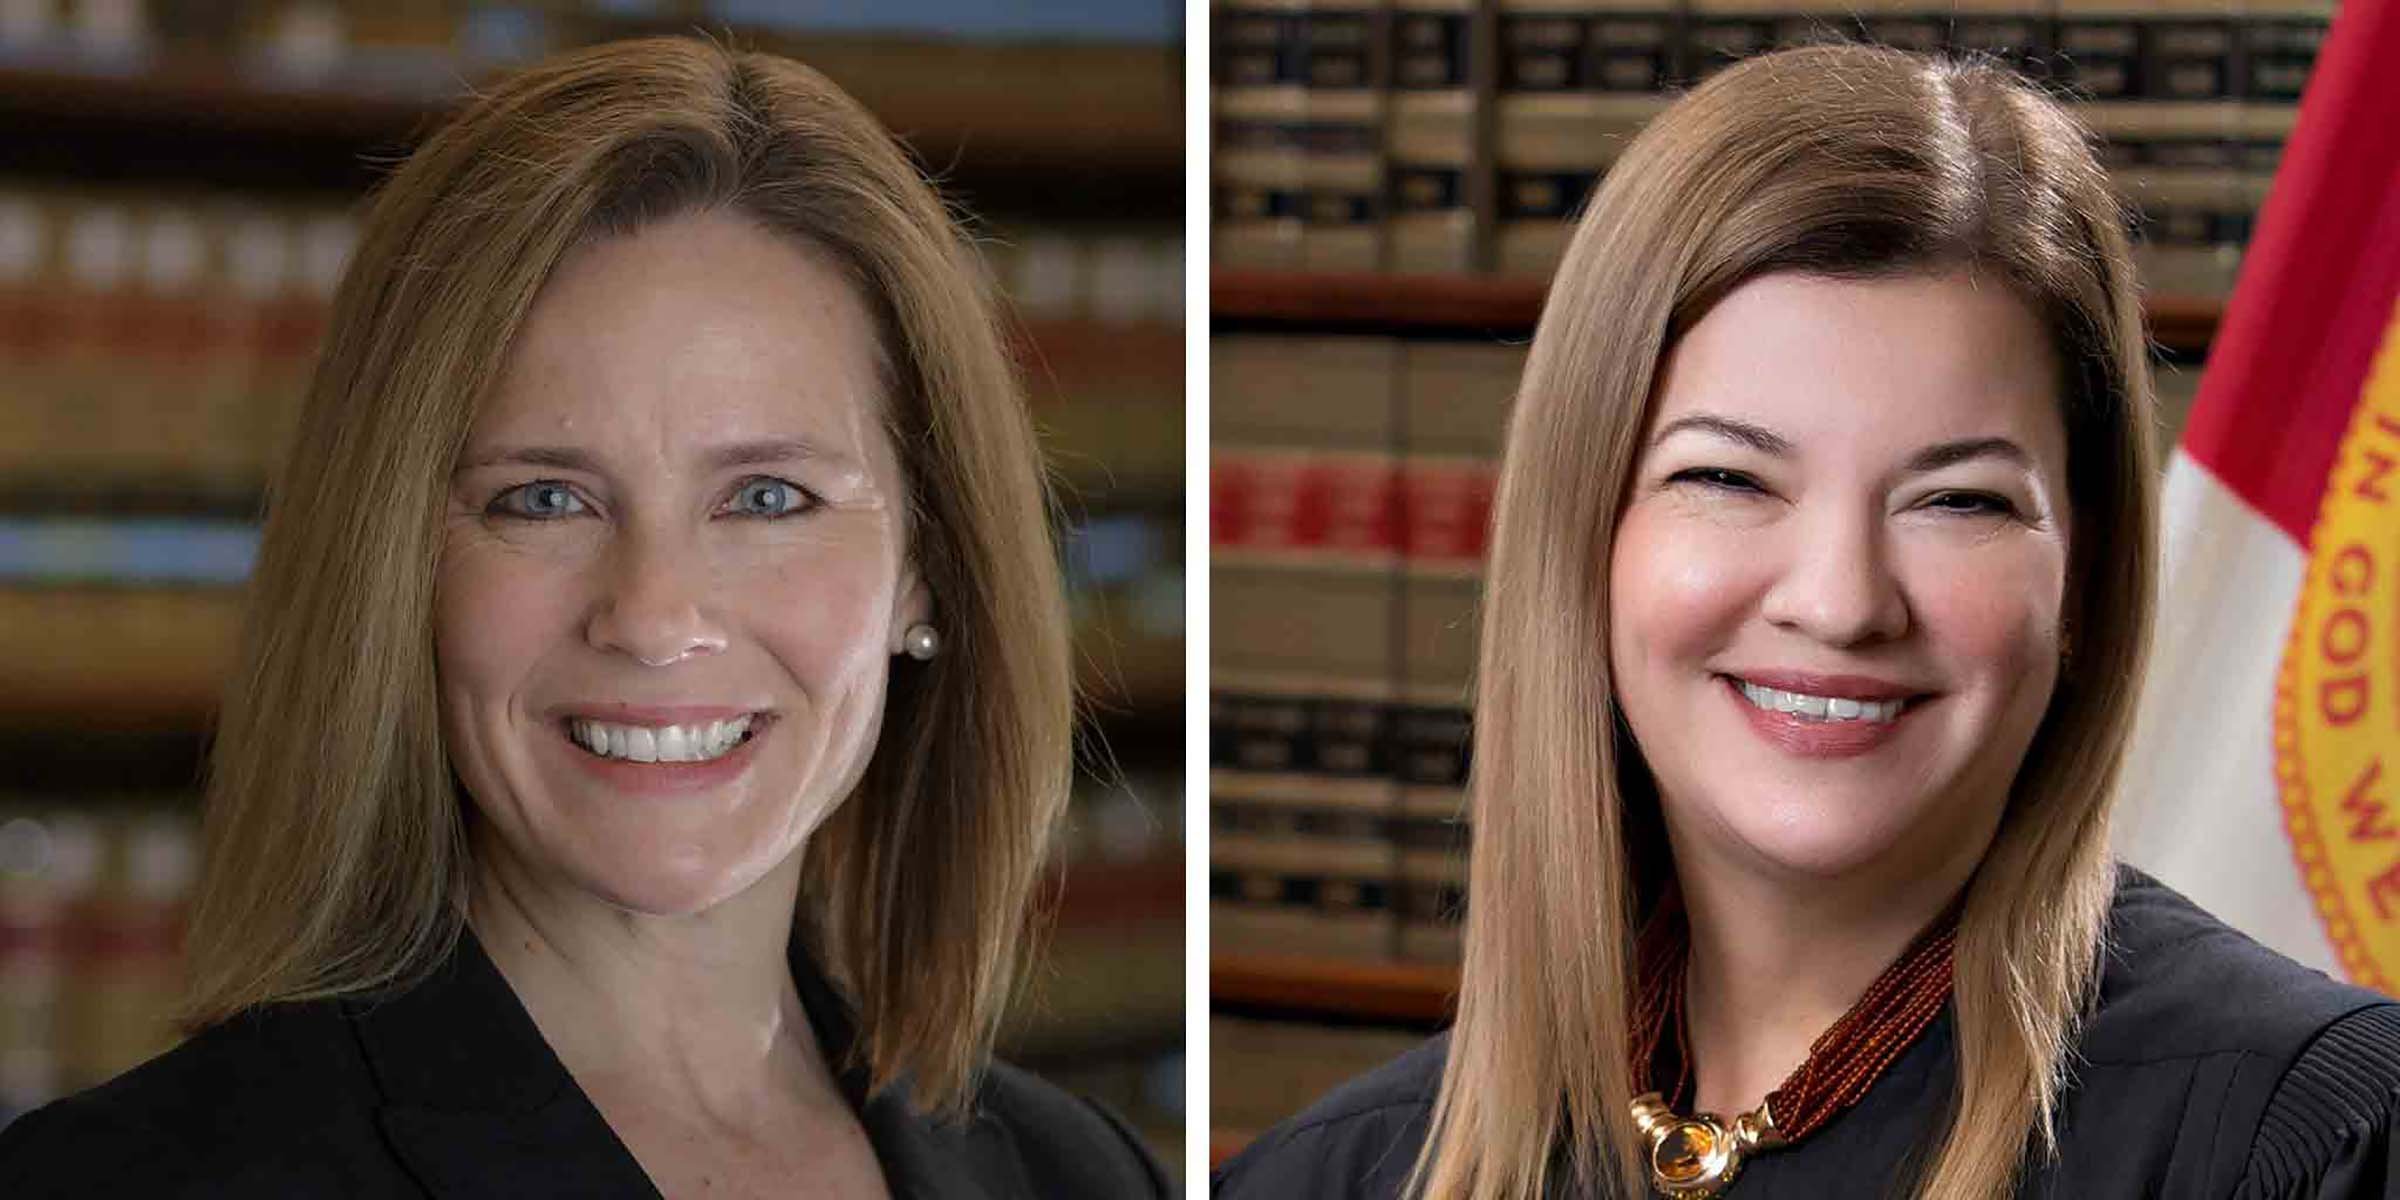 Judge Amy Coney Barrett and Judge Barbara Lagoa